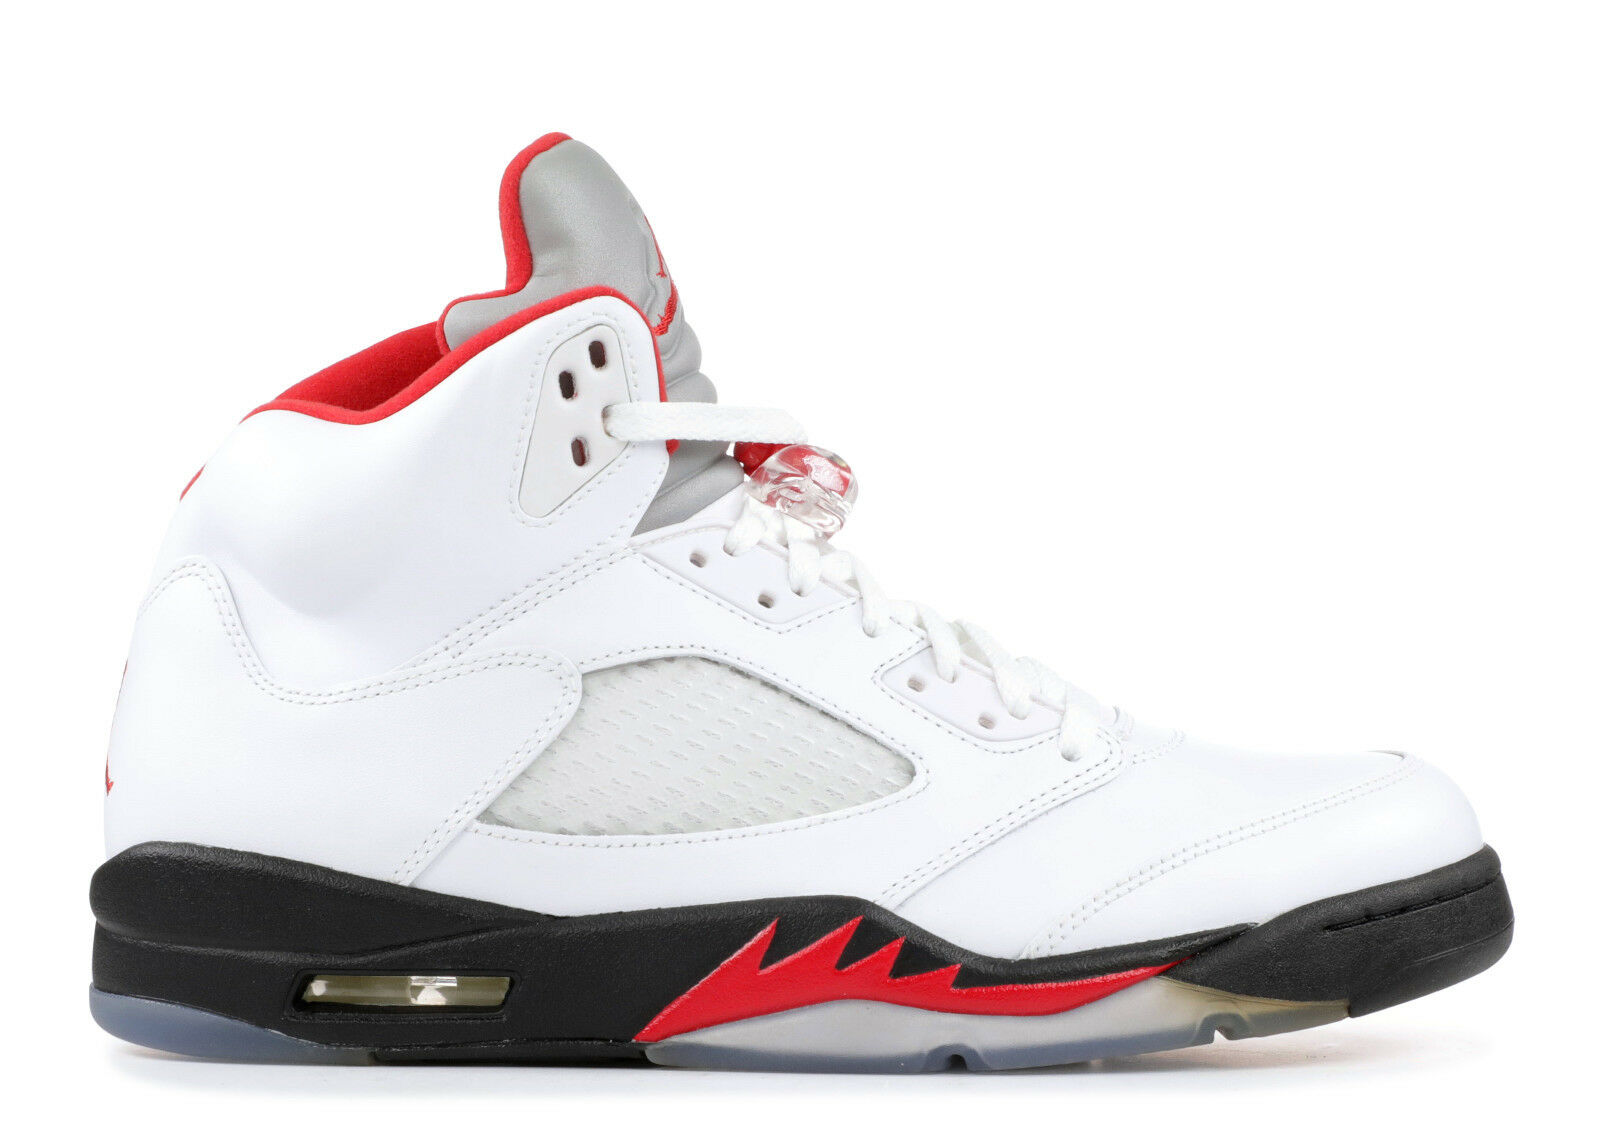 half off 7dfaf 3c1b0 where to buy 2018 blanco nike air jordan 5 retro blanco 2018 rojo fuego  negro 136027